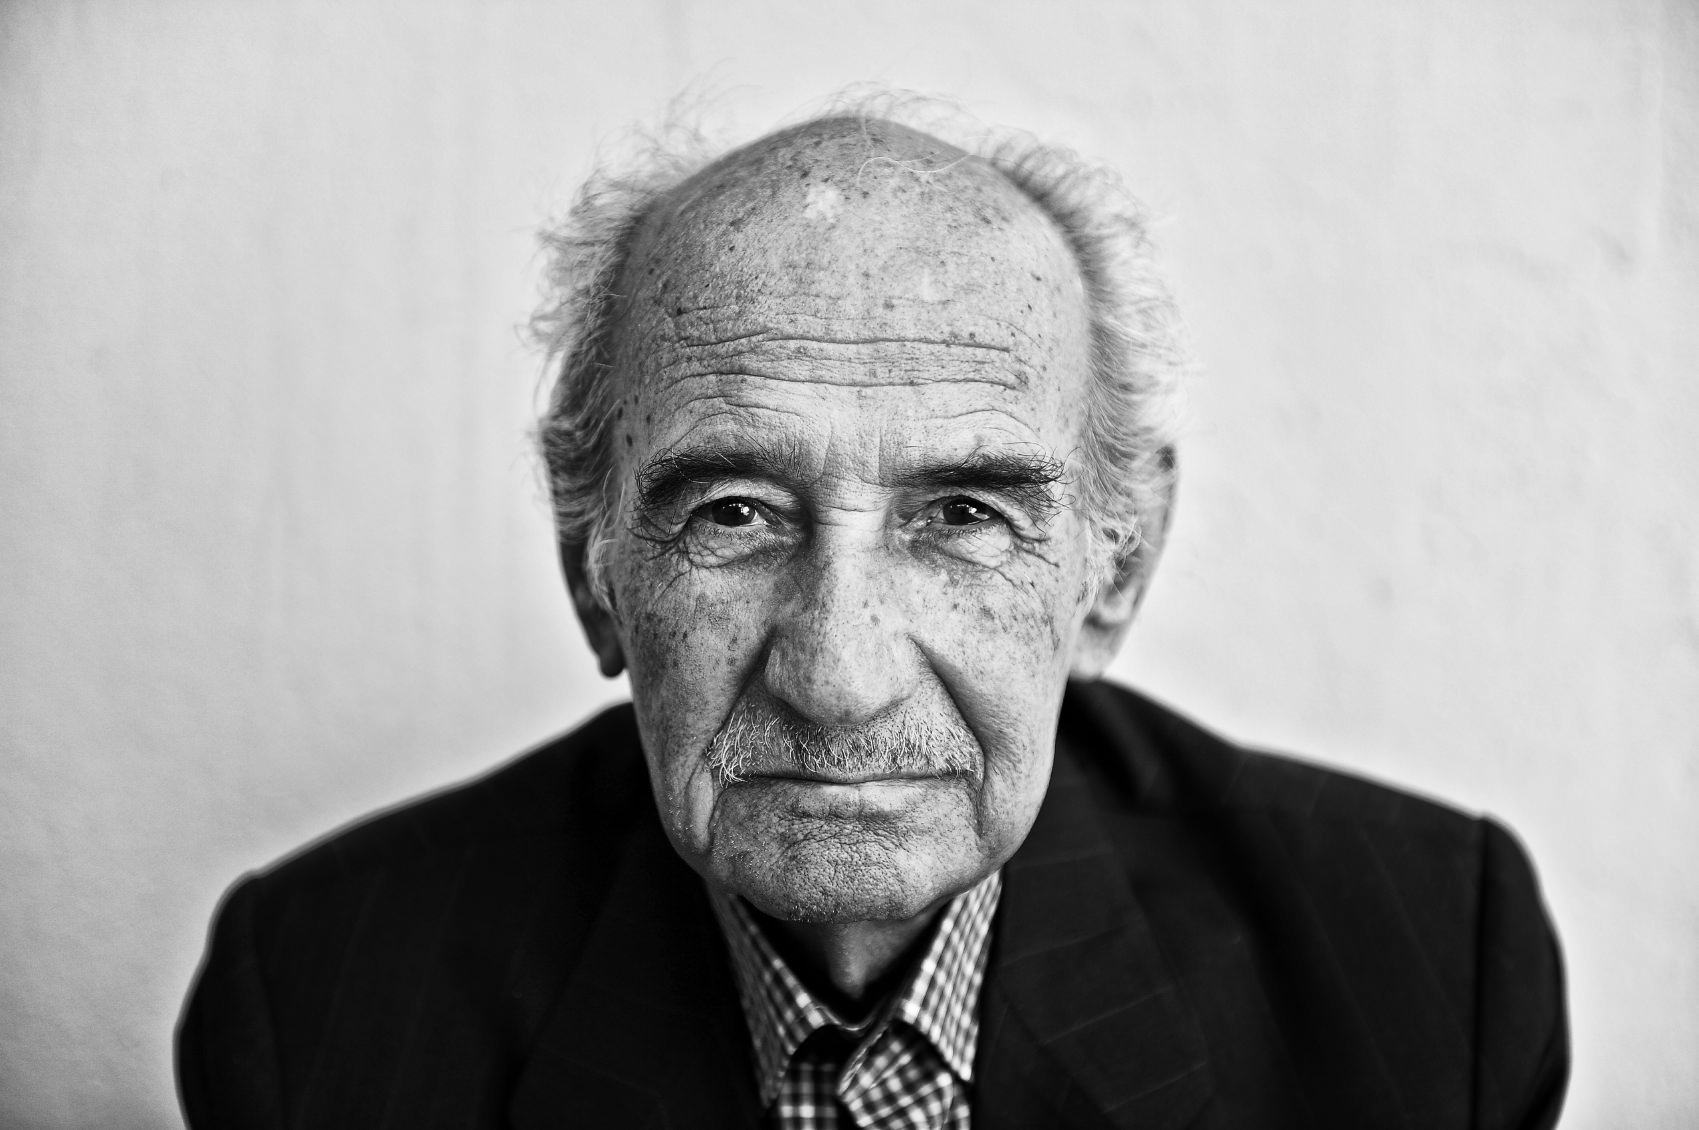 elderly man portrait - photo #24